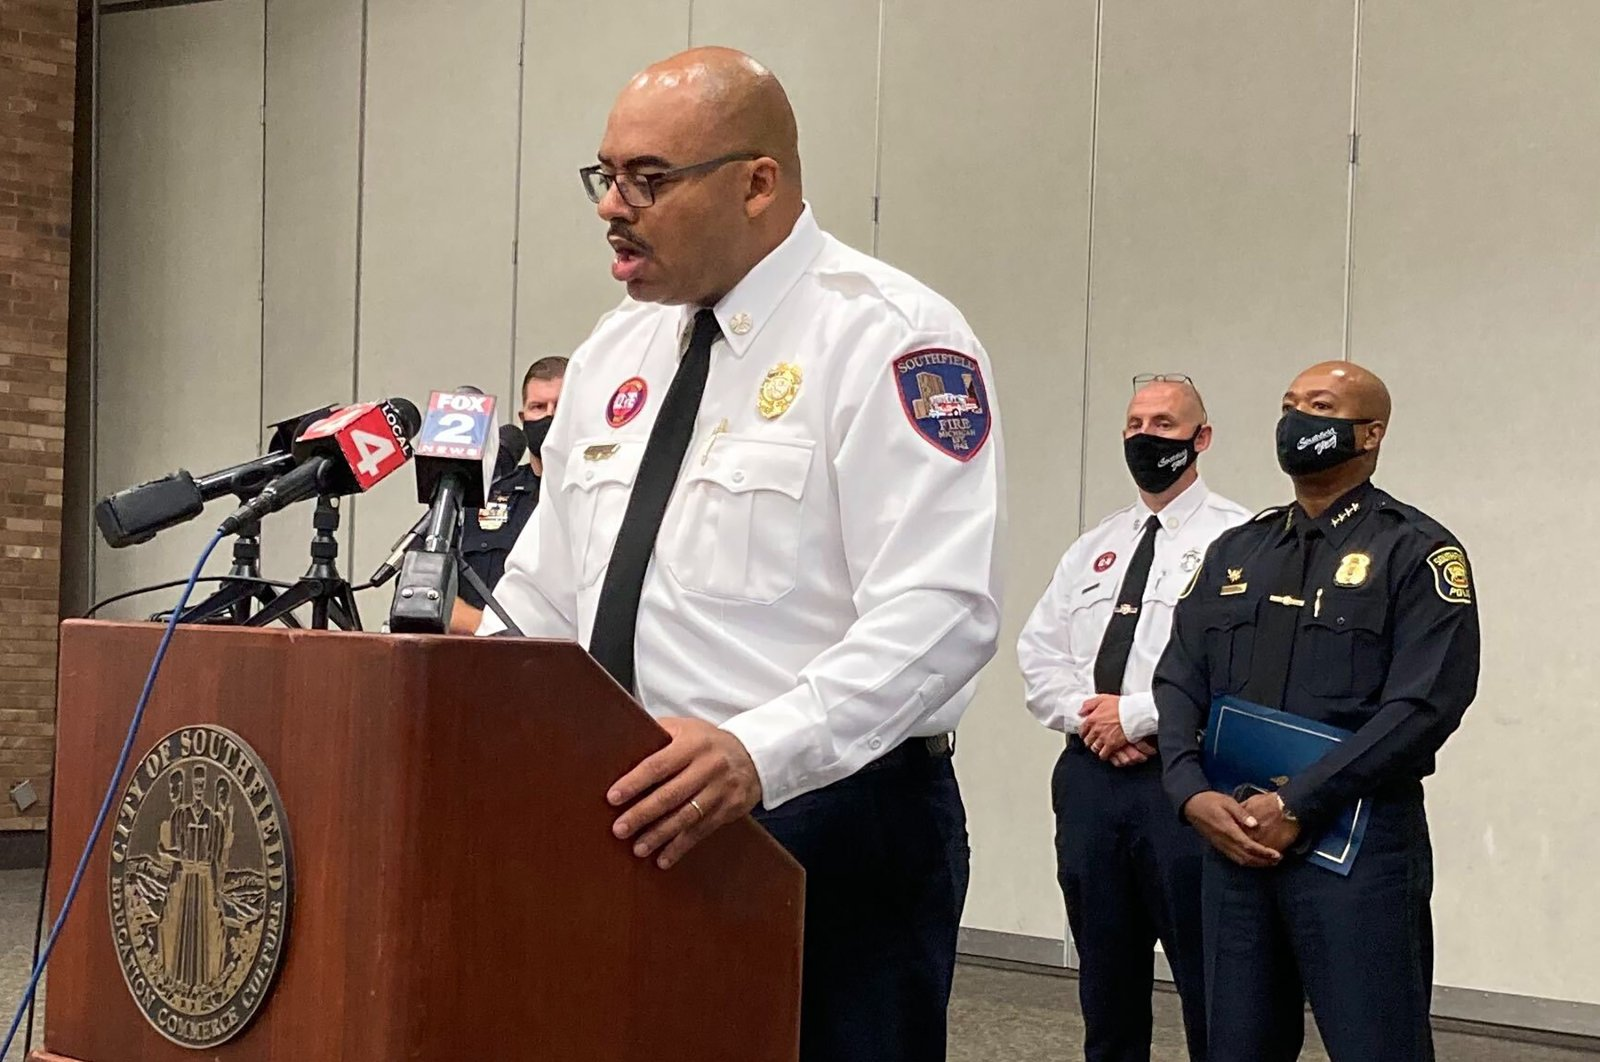 Southfield, Mich., Fire Chief Johnny Menifee holds a news conference on Wednesday, Aug. 26, 2020, in Southfield, Mich., in response to questions about a woman, Timesha Beauchamp, who was found alive at a funeral home. (AP Photo)